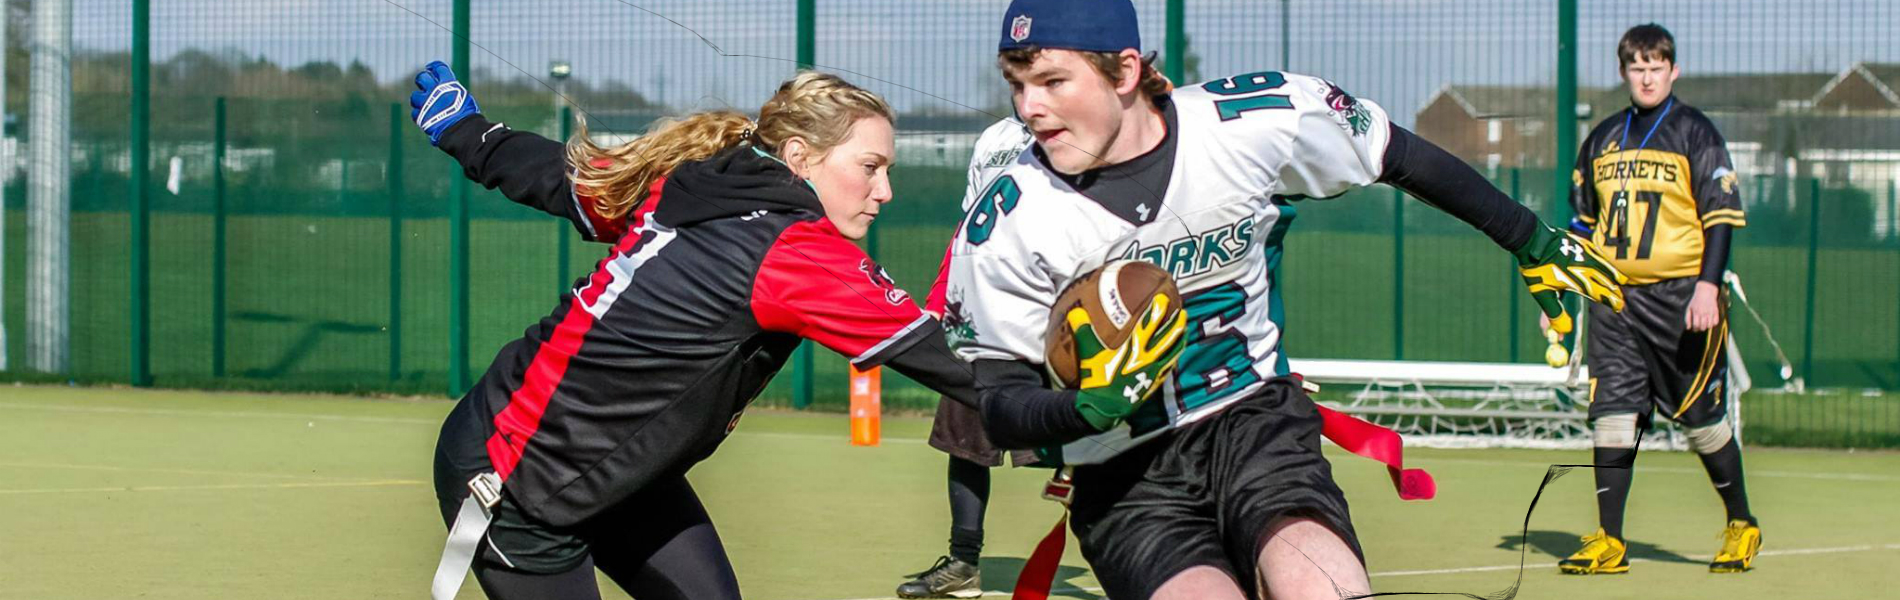 Try Adult Flag Football